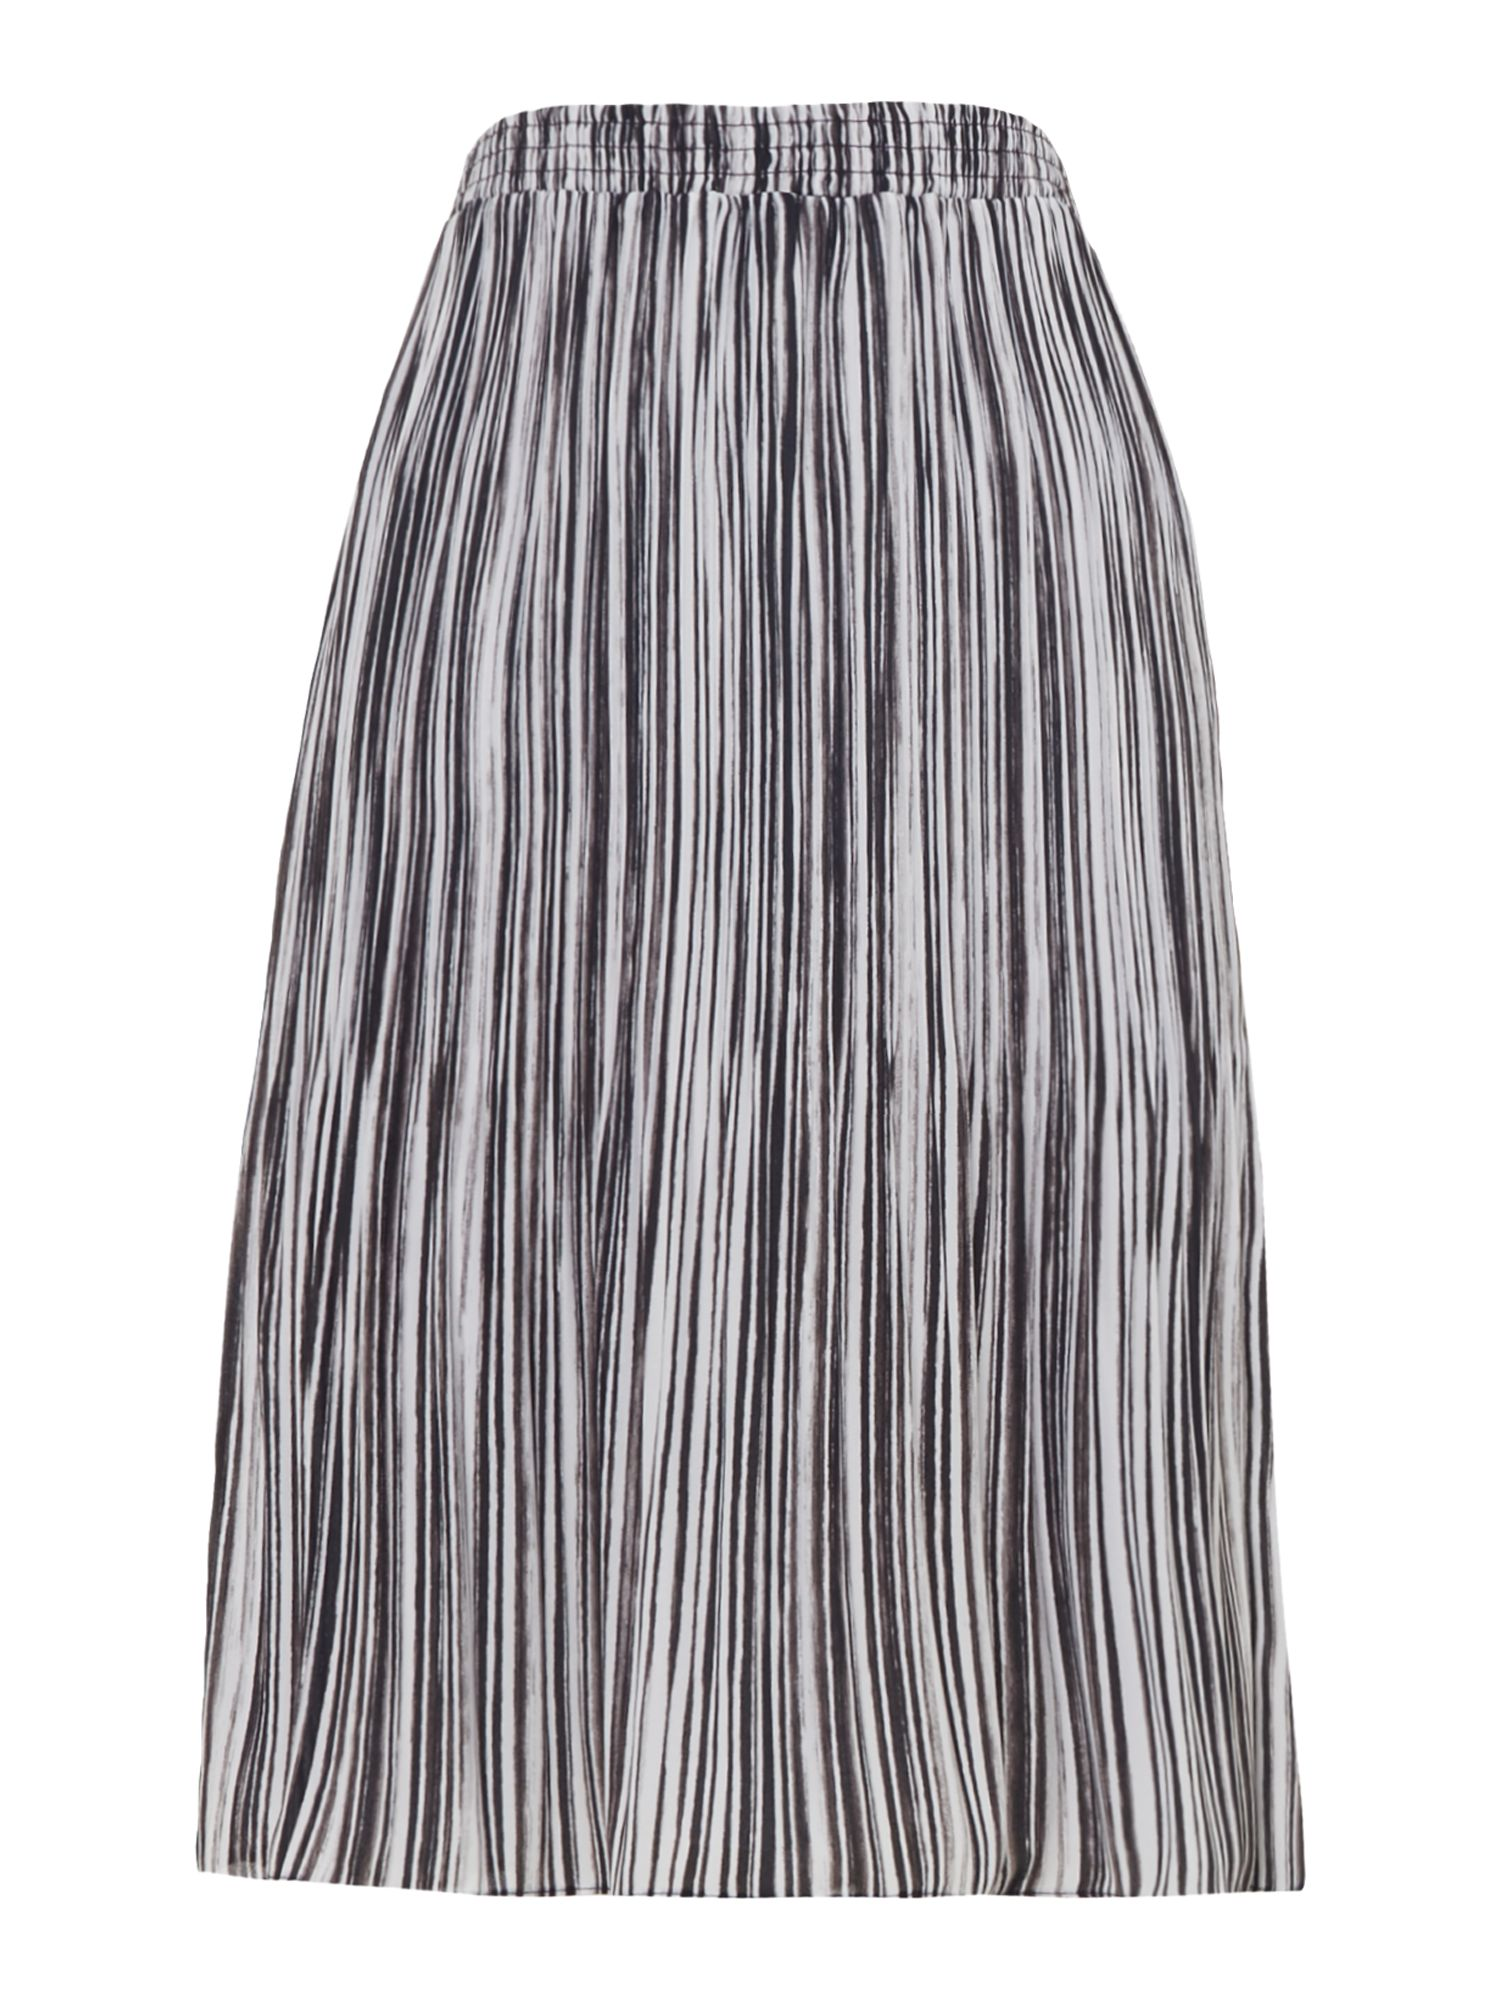 Ellen Tracy Striped skirt, Multi-Coloured